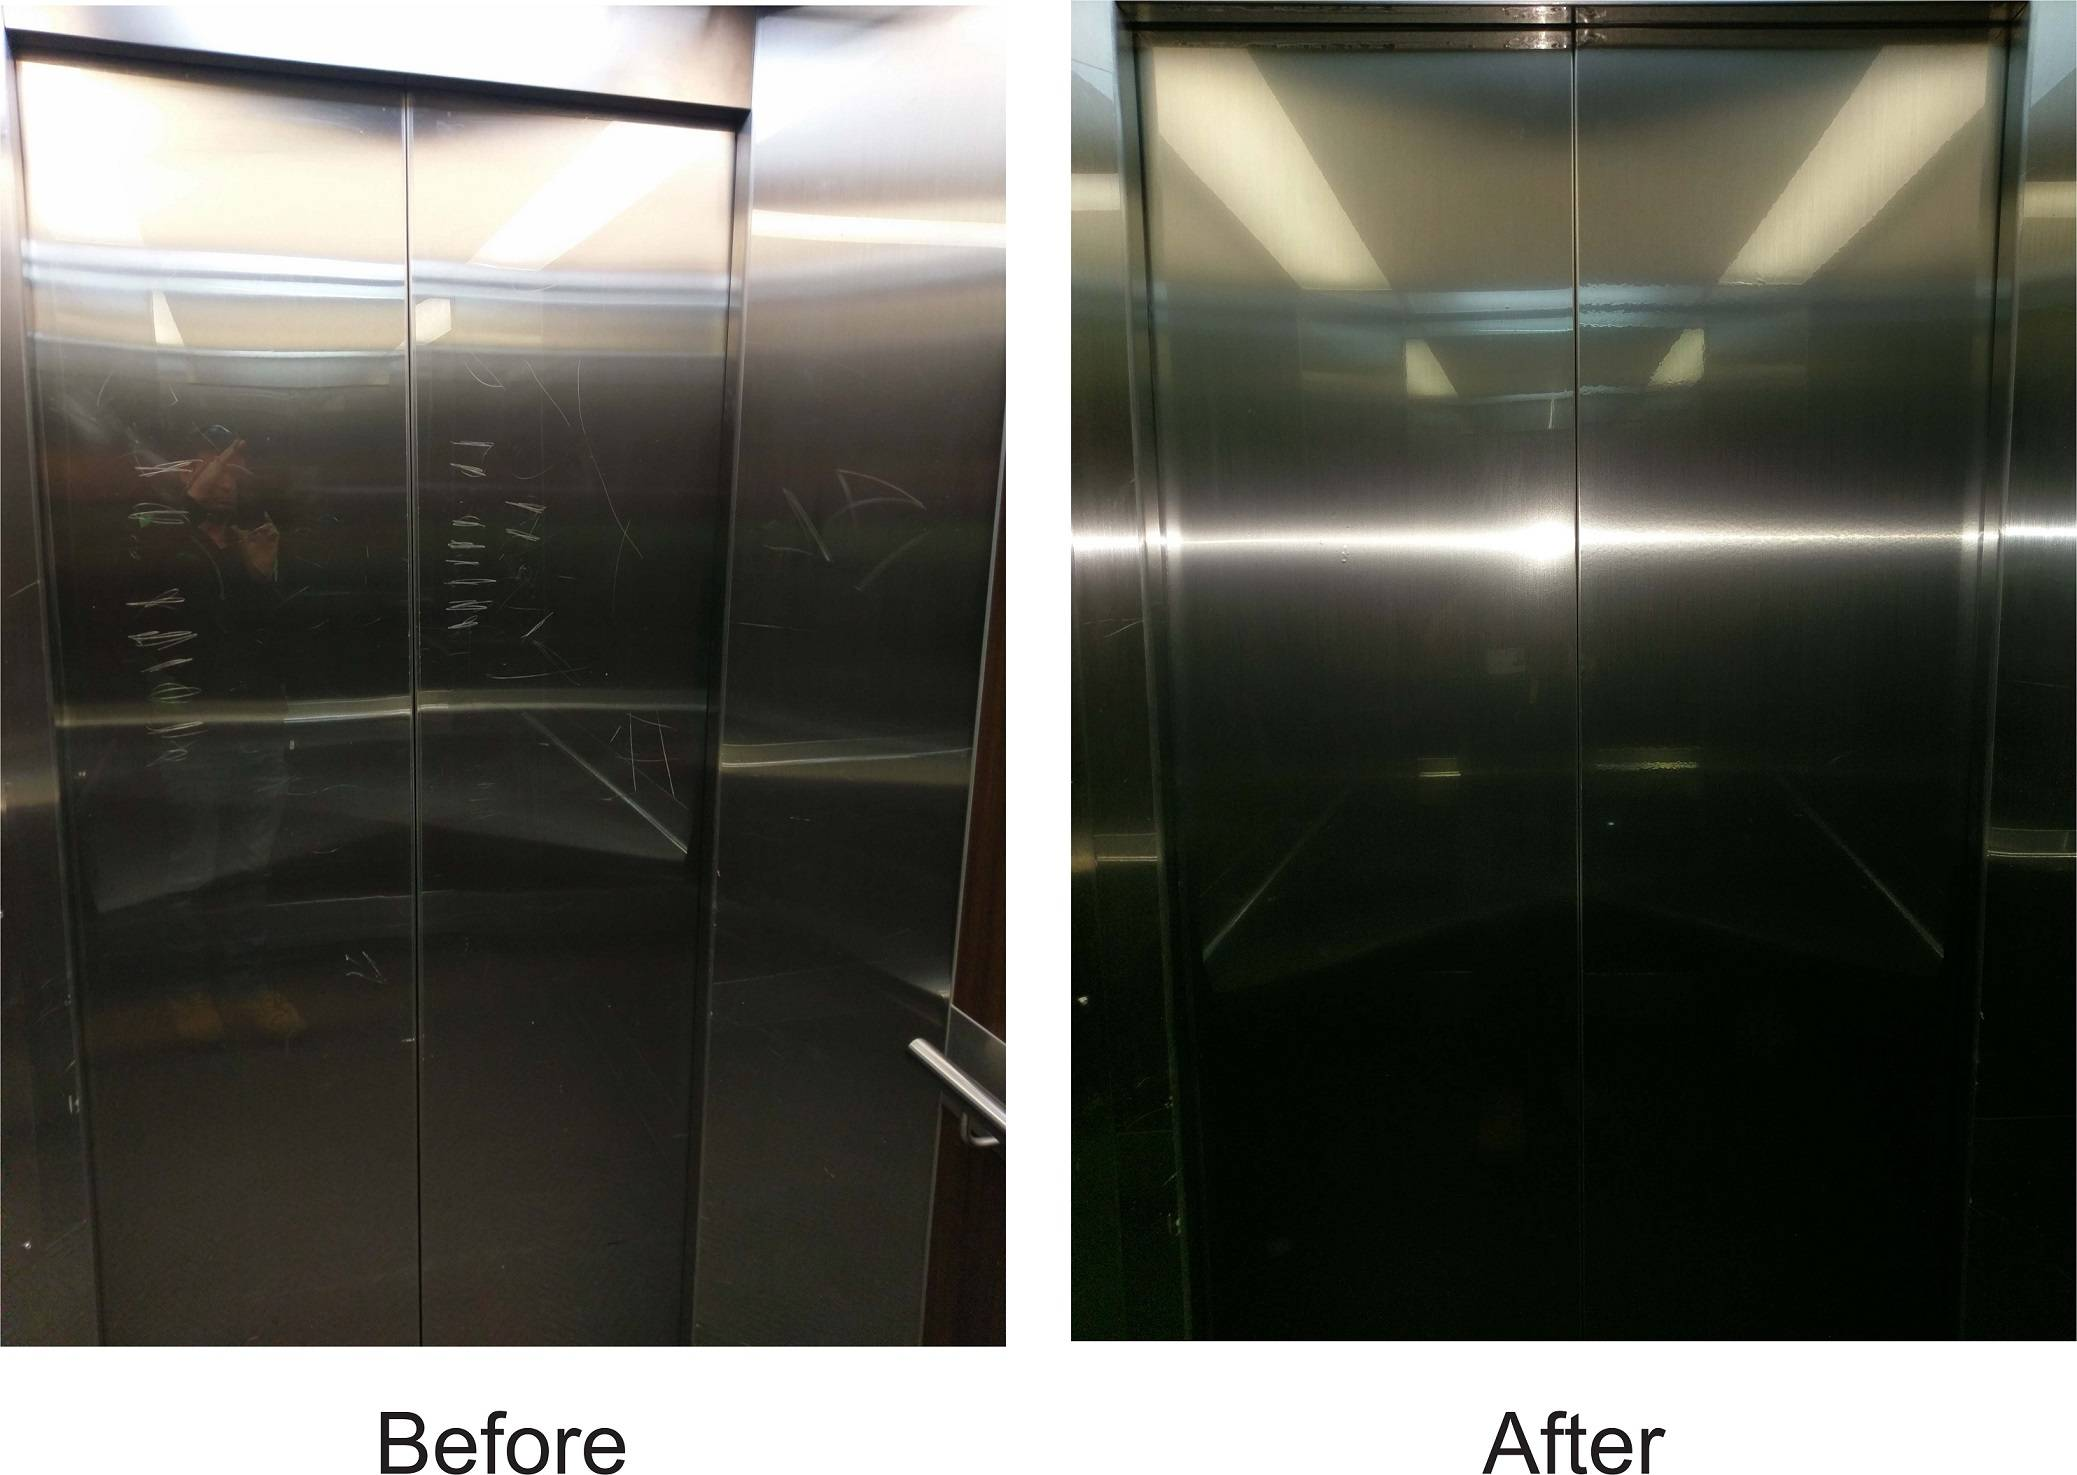 Before and After Stainless Steel Film